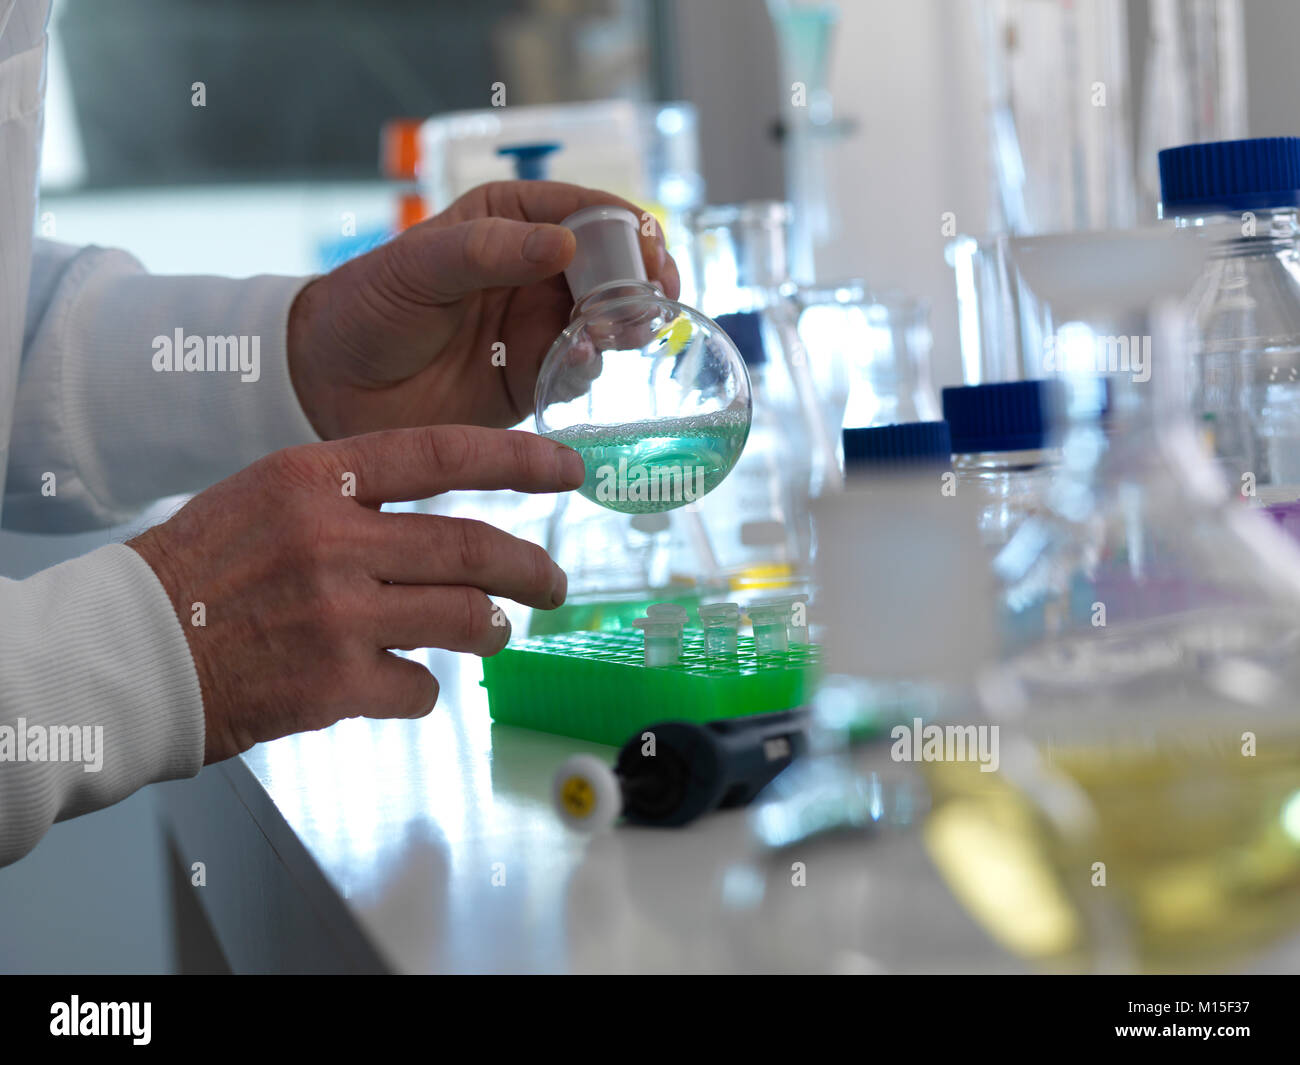 MODEL RELEASED. Biotechnology experiment. Scientist preparing a chemical formula in a laboratory flask during a - Stock Image